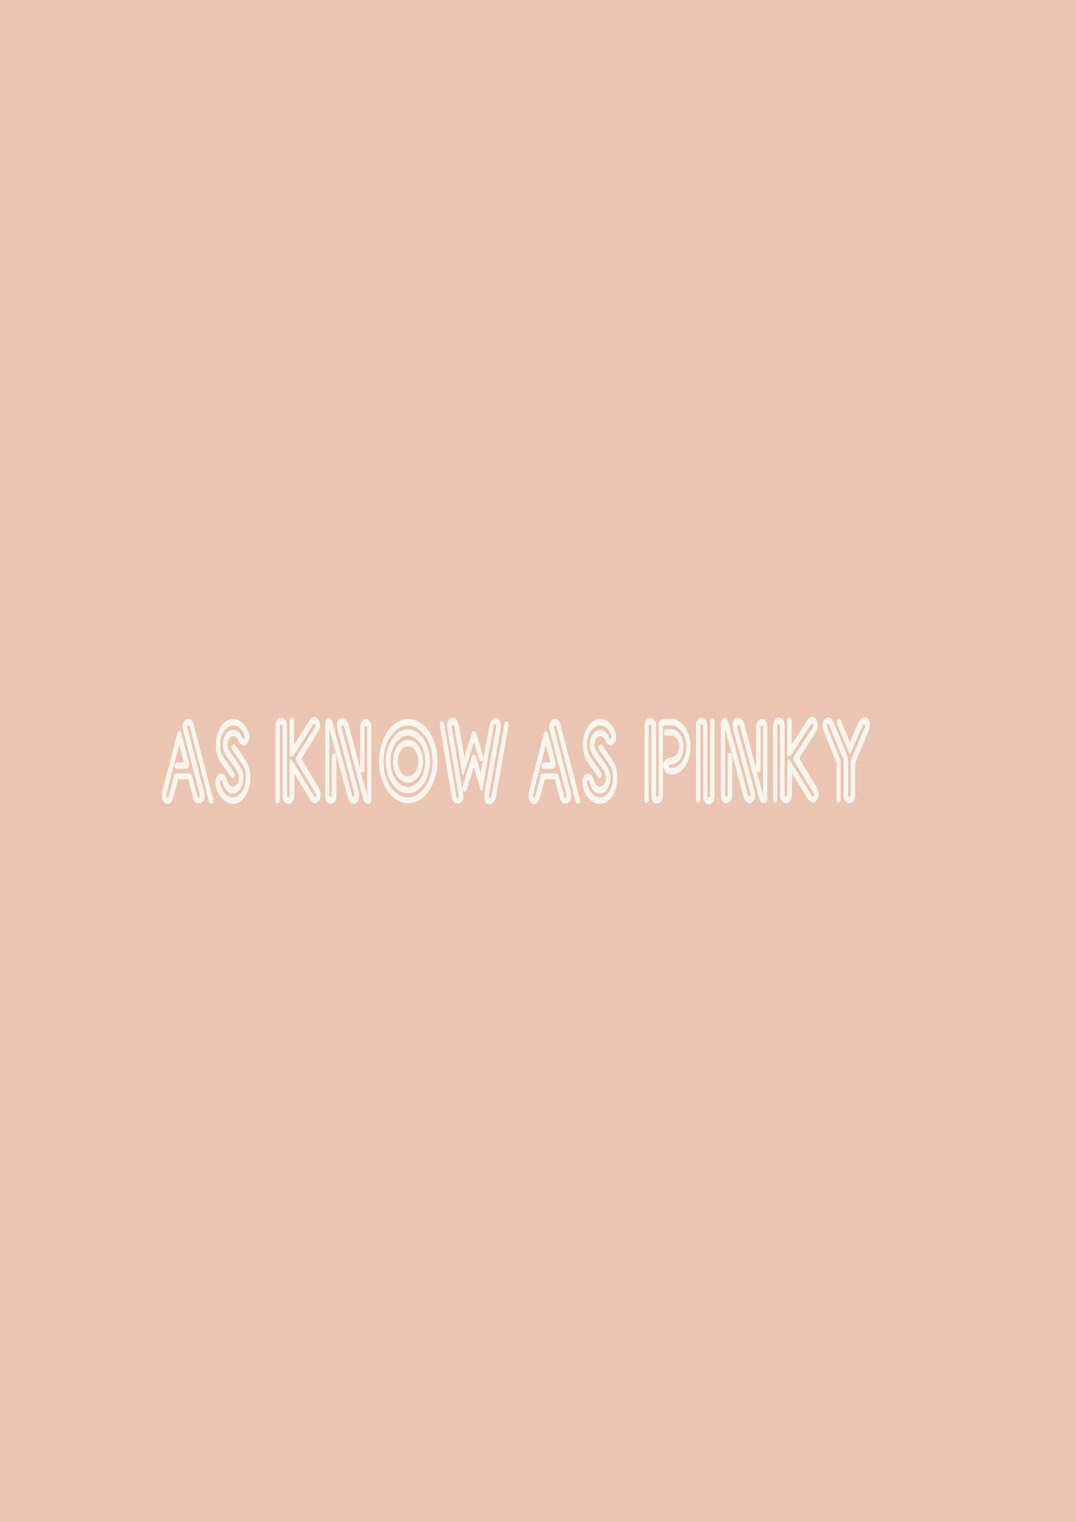 AS KNOW AS PINKY メインイメージ